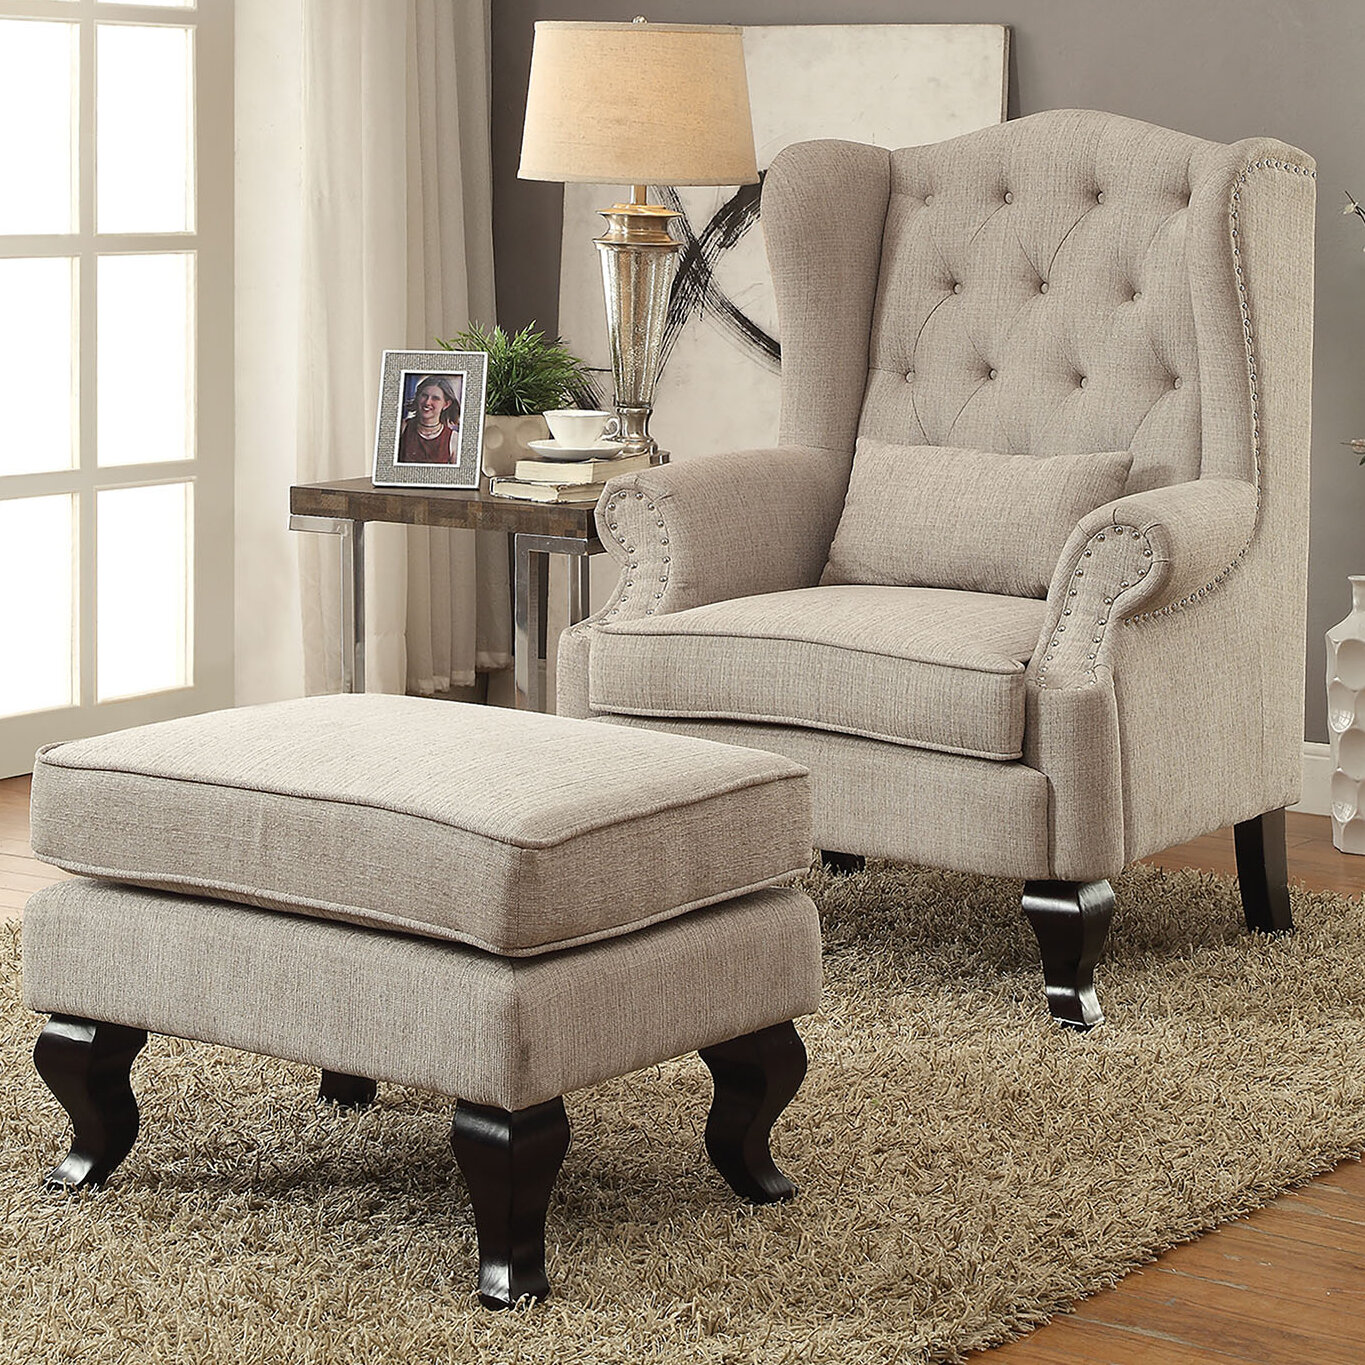 Au0026J Homes Studio Willow Wingback Chair And Ottoman | Wayfair